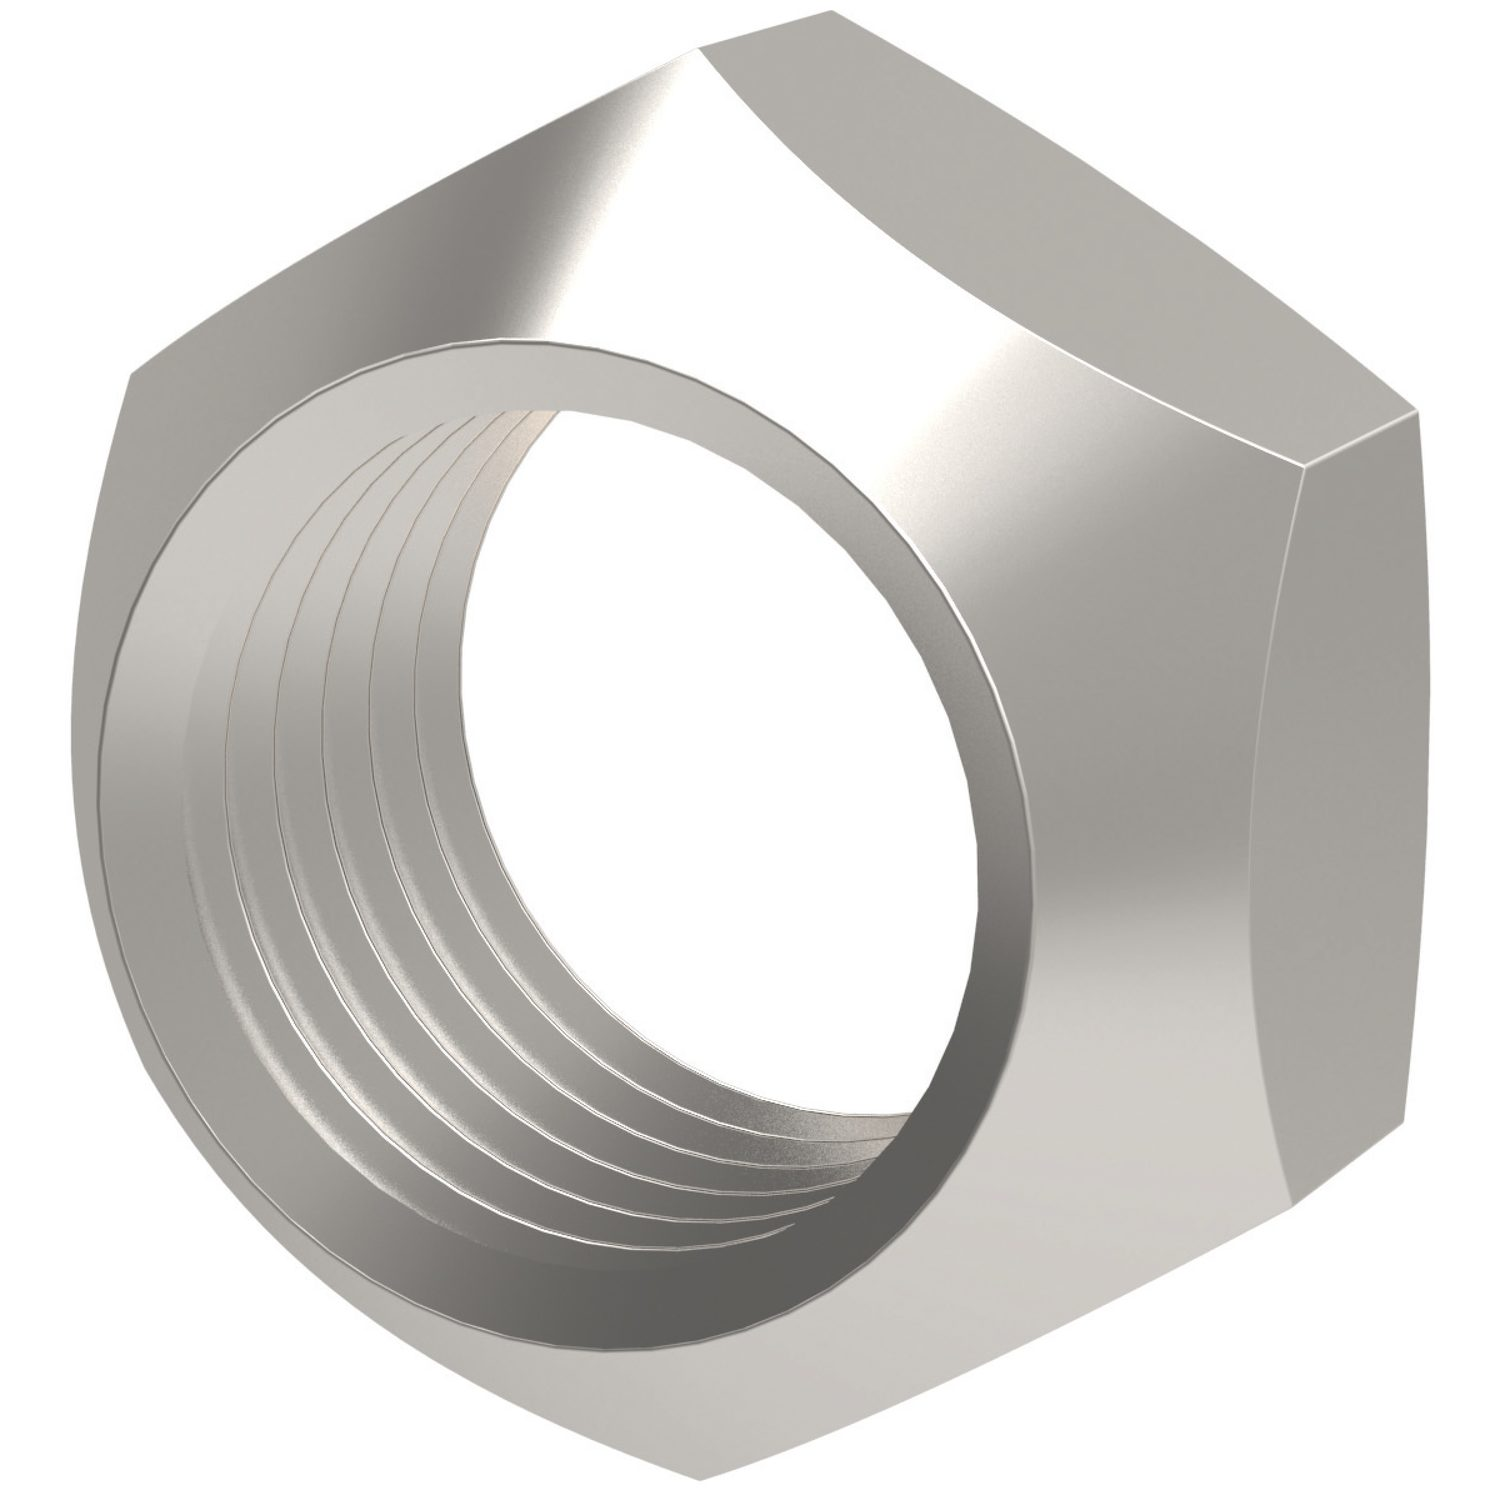 Stover Nuts Zinc plated. Reusable, resistant to shocks, vibrations and dynamic loads.